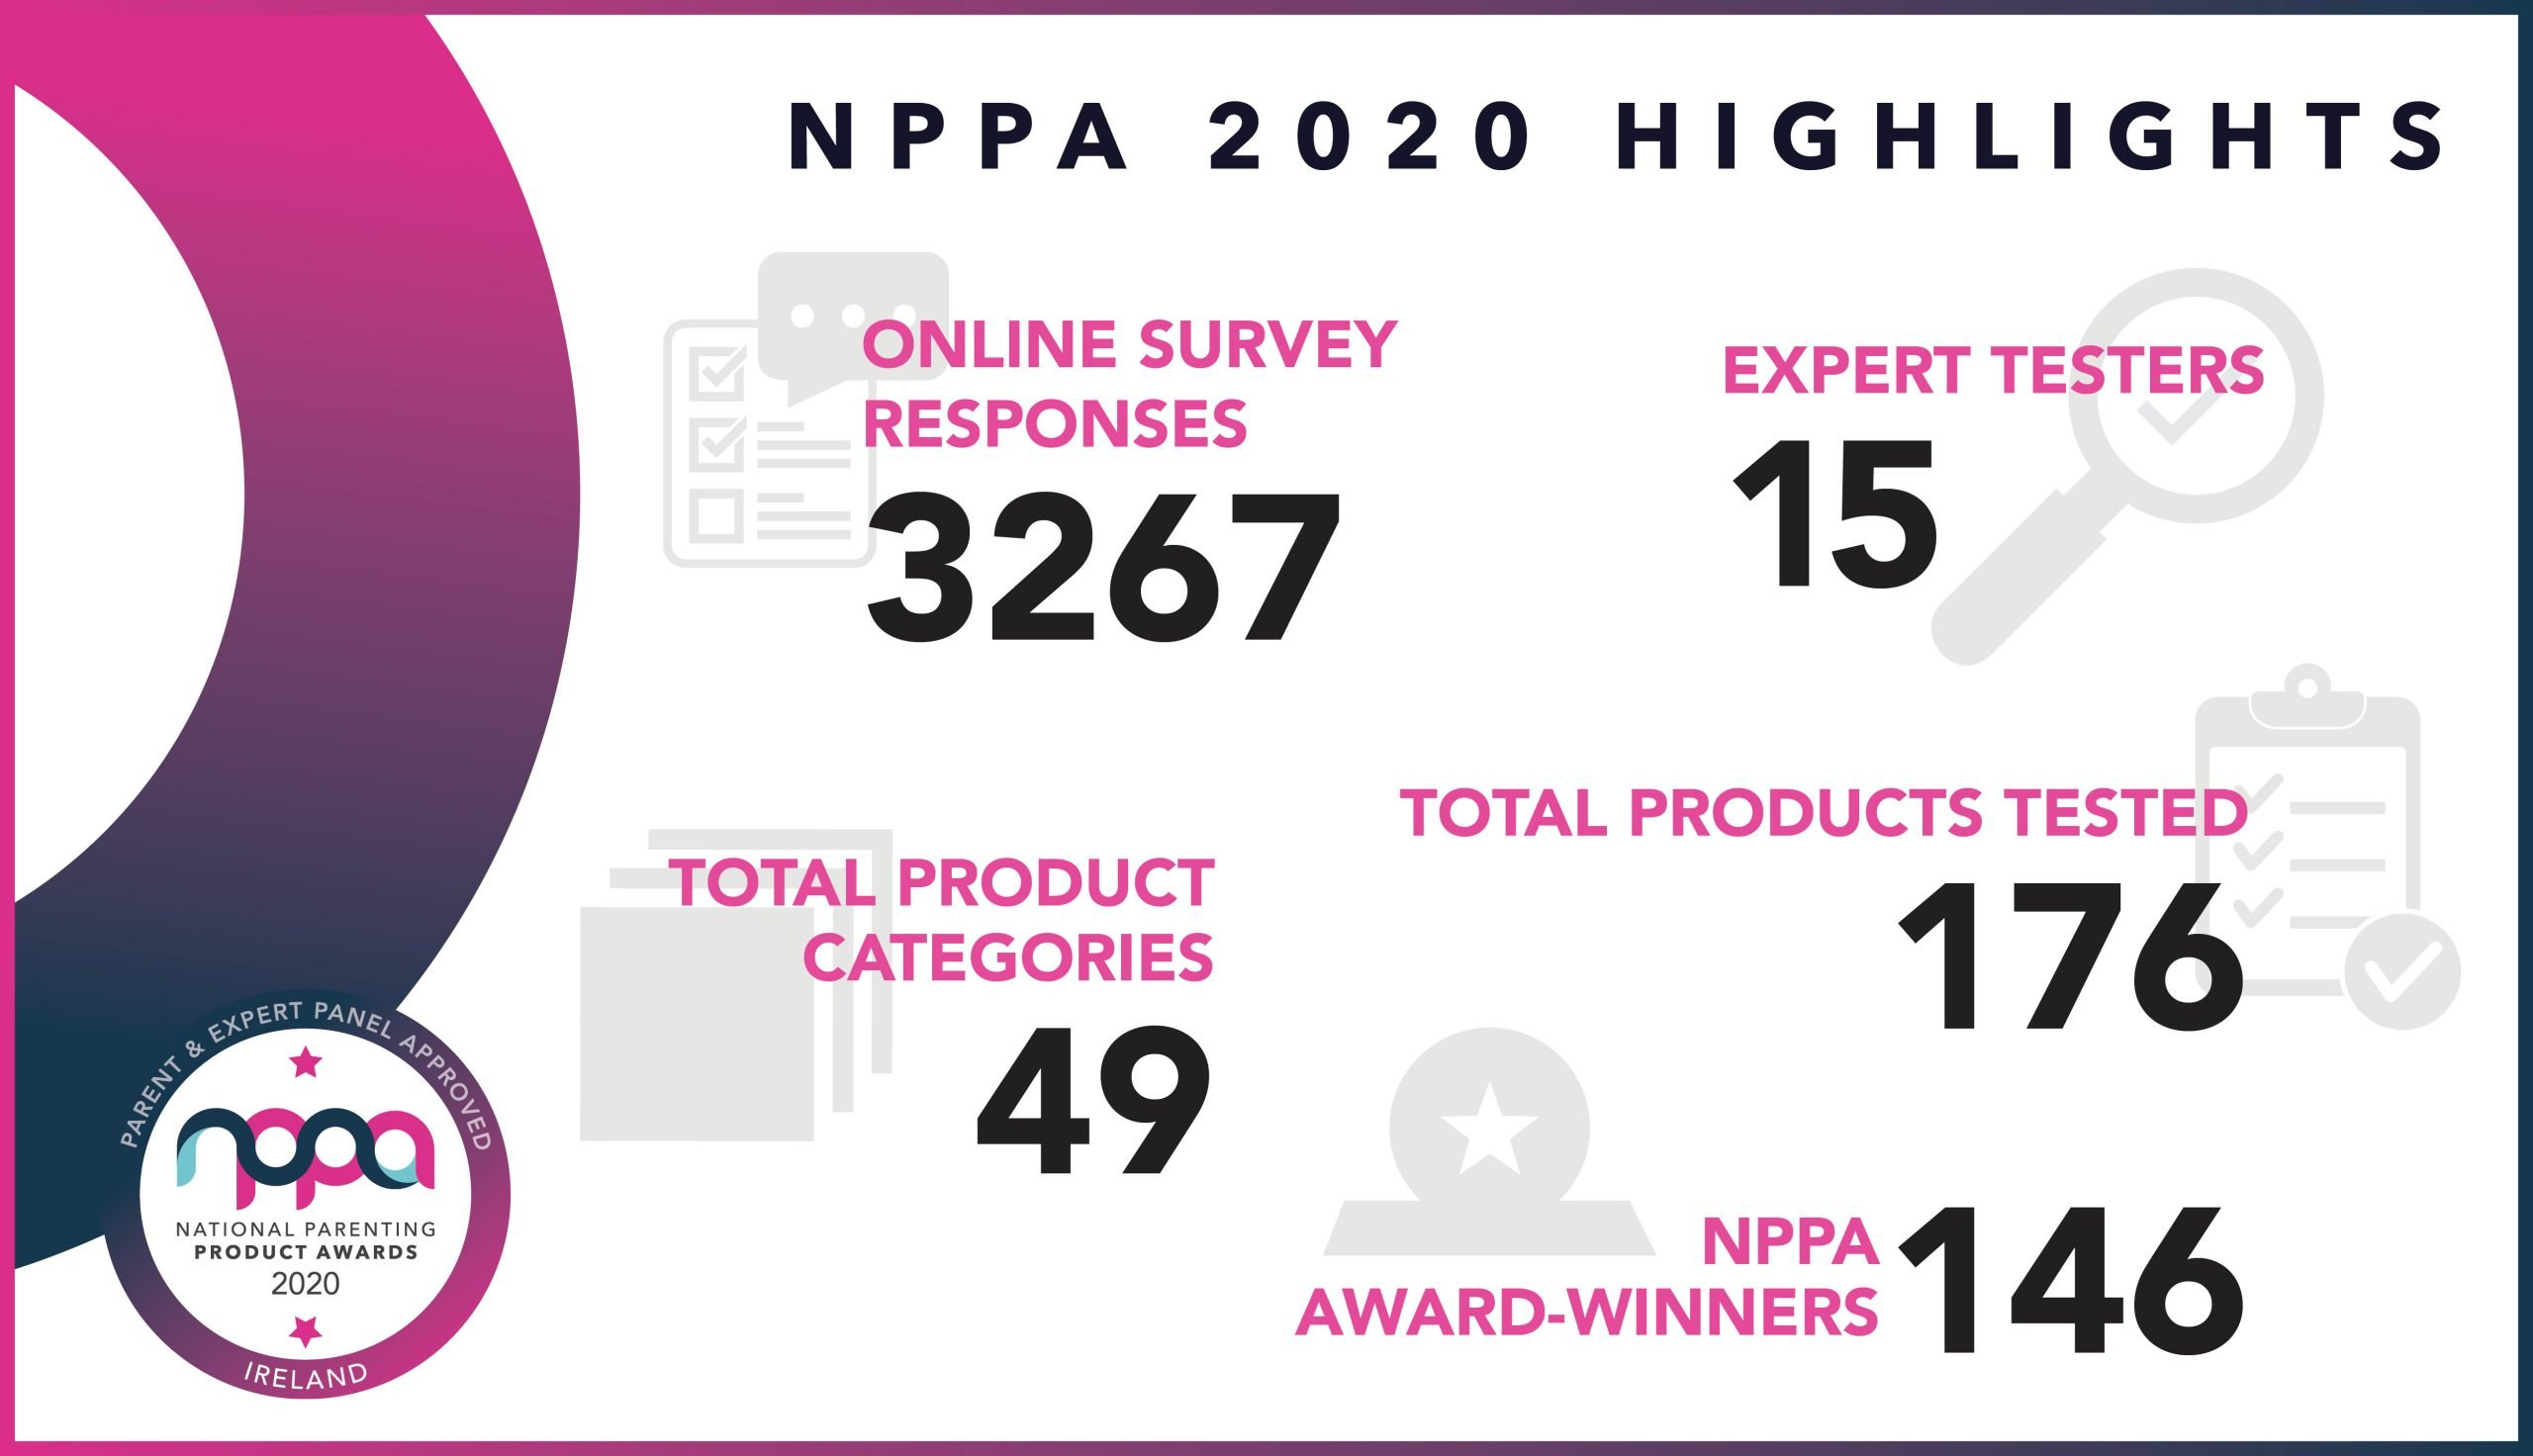 National Parenting Product Awards Timeline